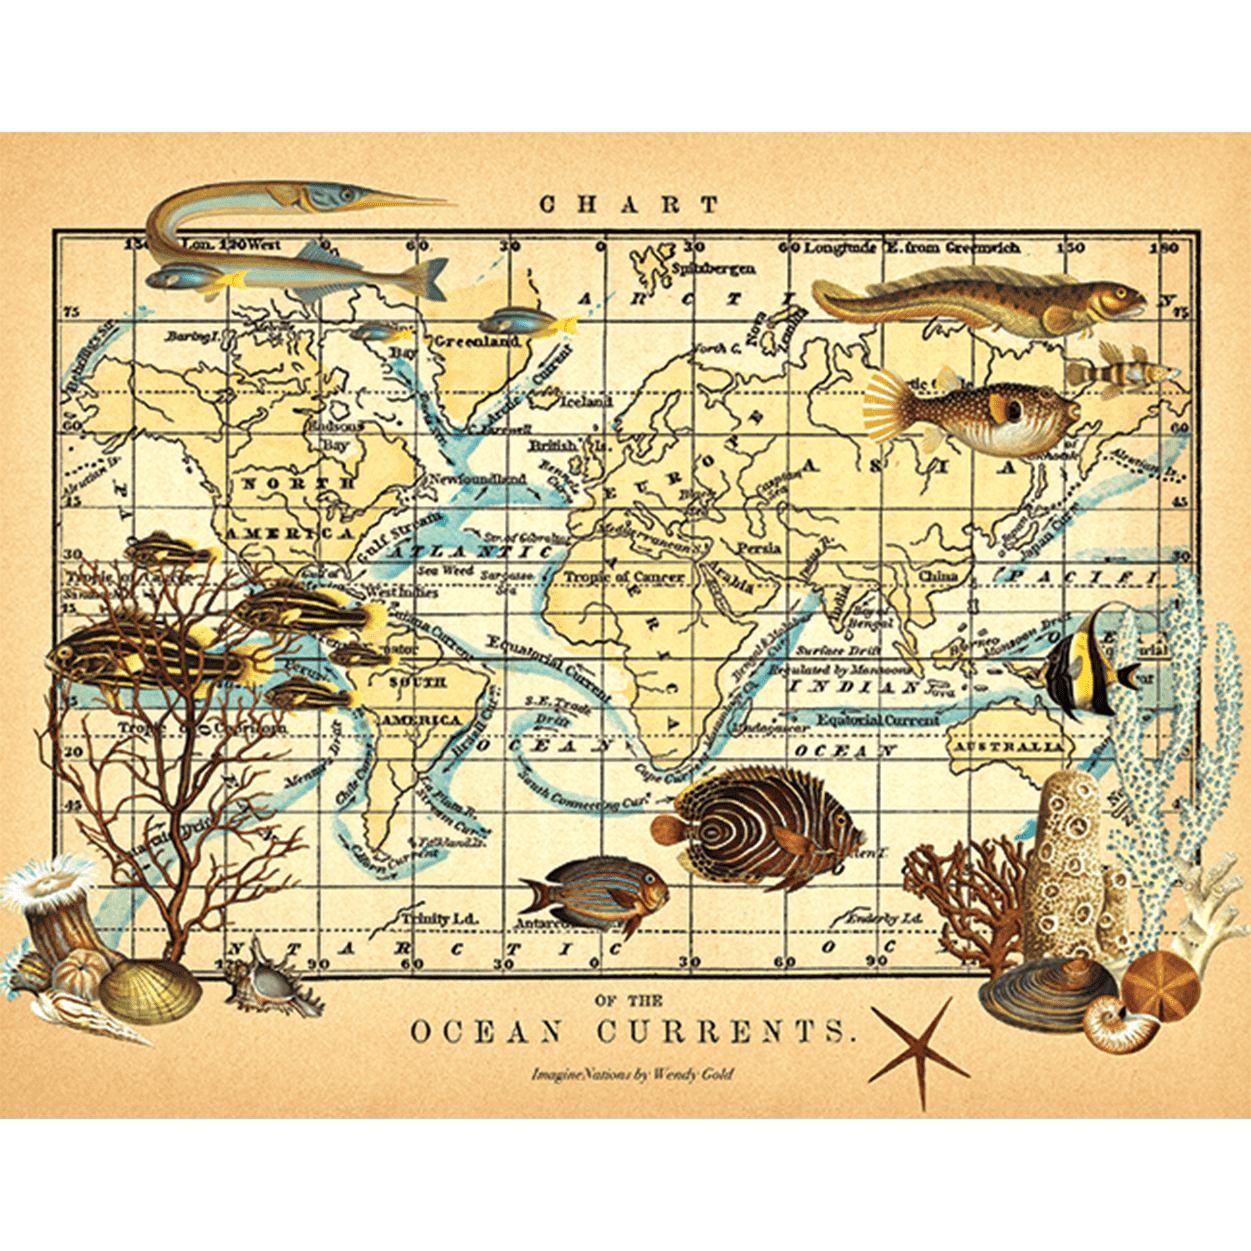 Wendy Gold Maps of the Imagination Keepsake Box | Sale | Galison on click to color us map, plant location map, clickable us map, foreign exchange map, crowdsourcing map, global data map, trade map, personal excellence map, creative strategy map, cash map, rep map, routes to market map, inventory map, journalism map, consumer goods map, ngo map, coordinating map, developing markets map, aerospace map, nemra map,